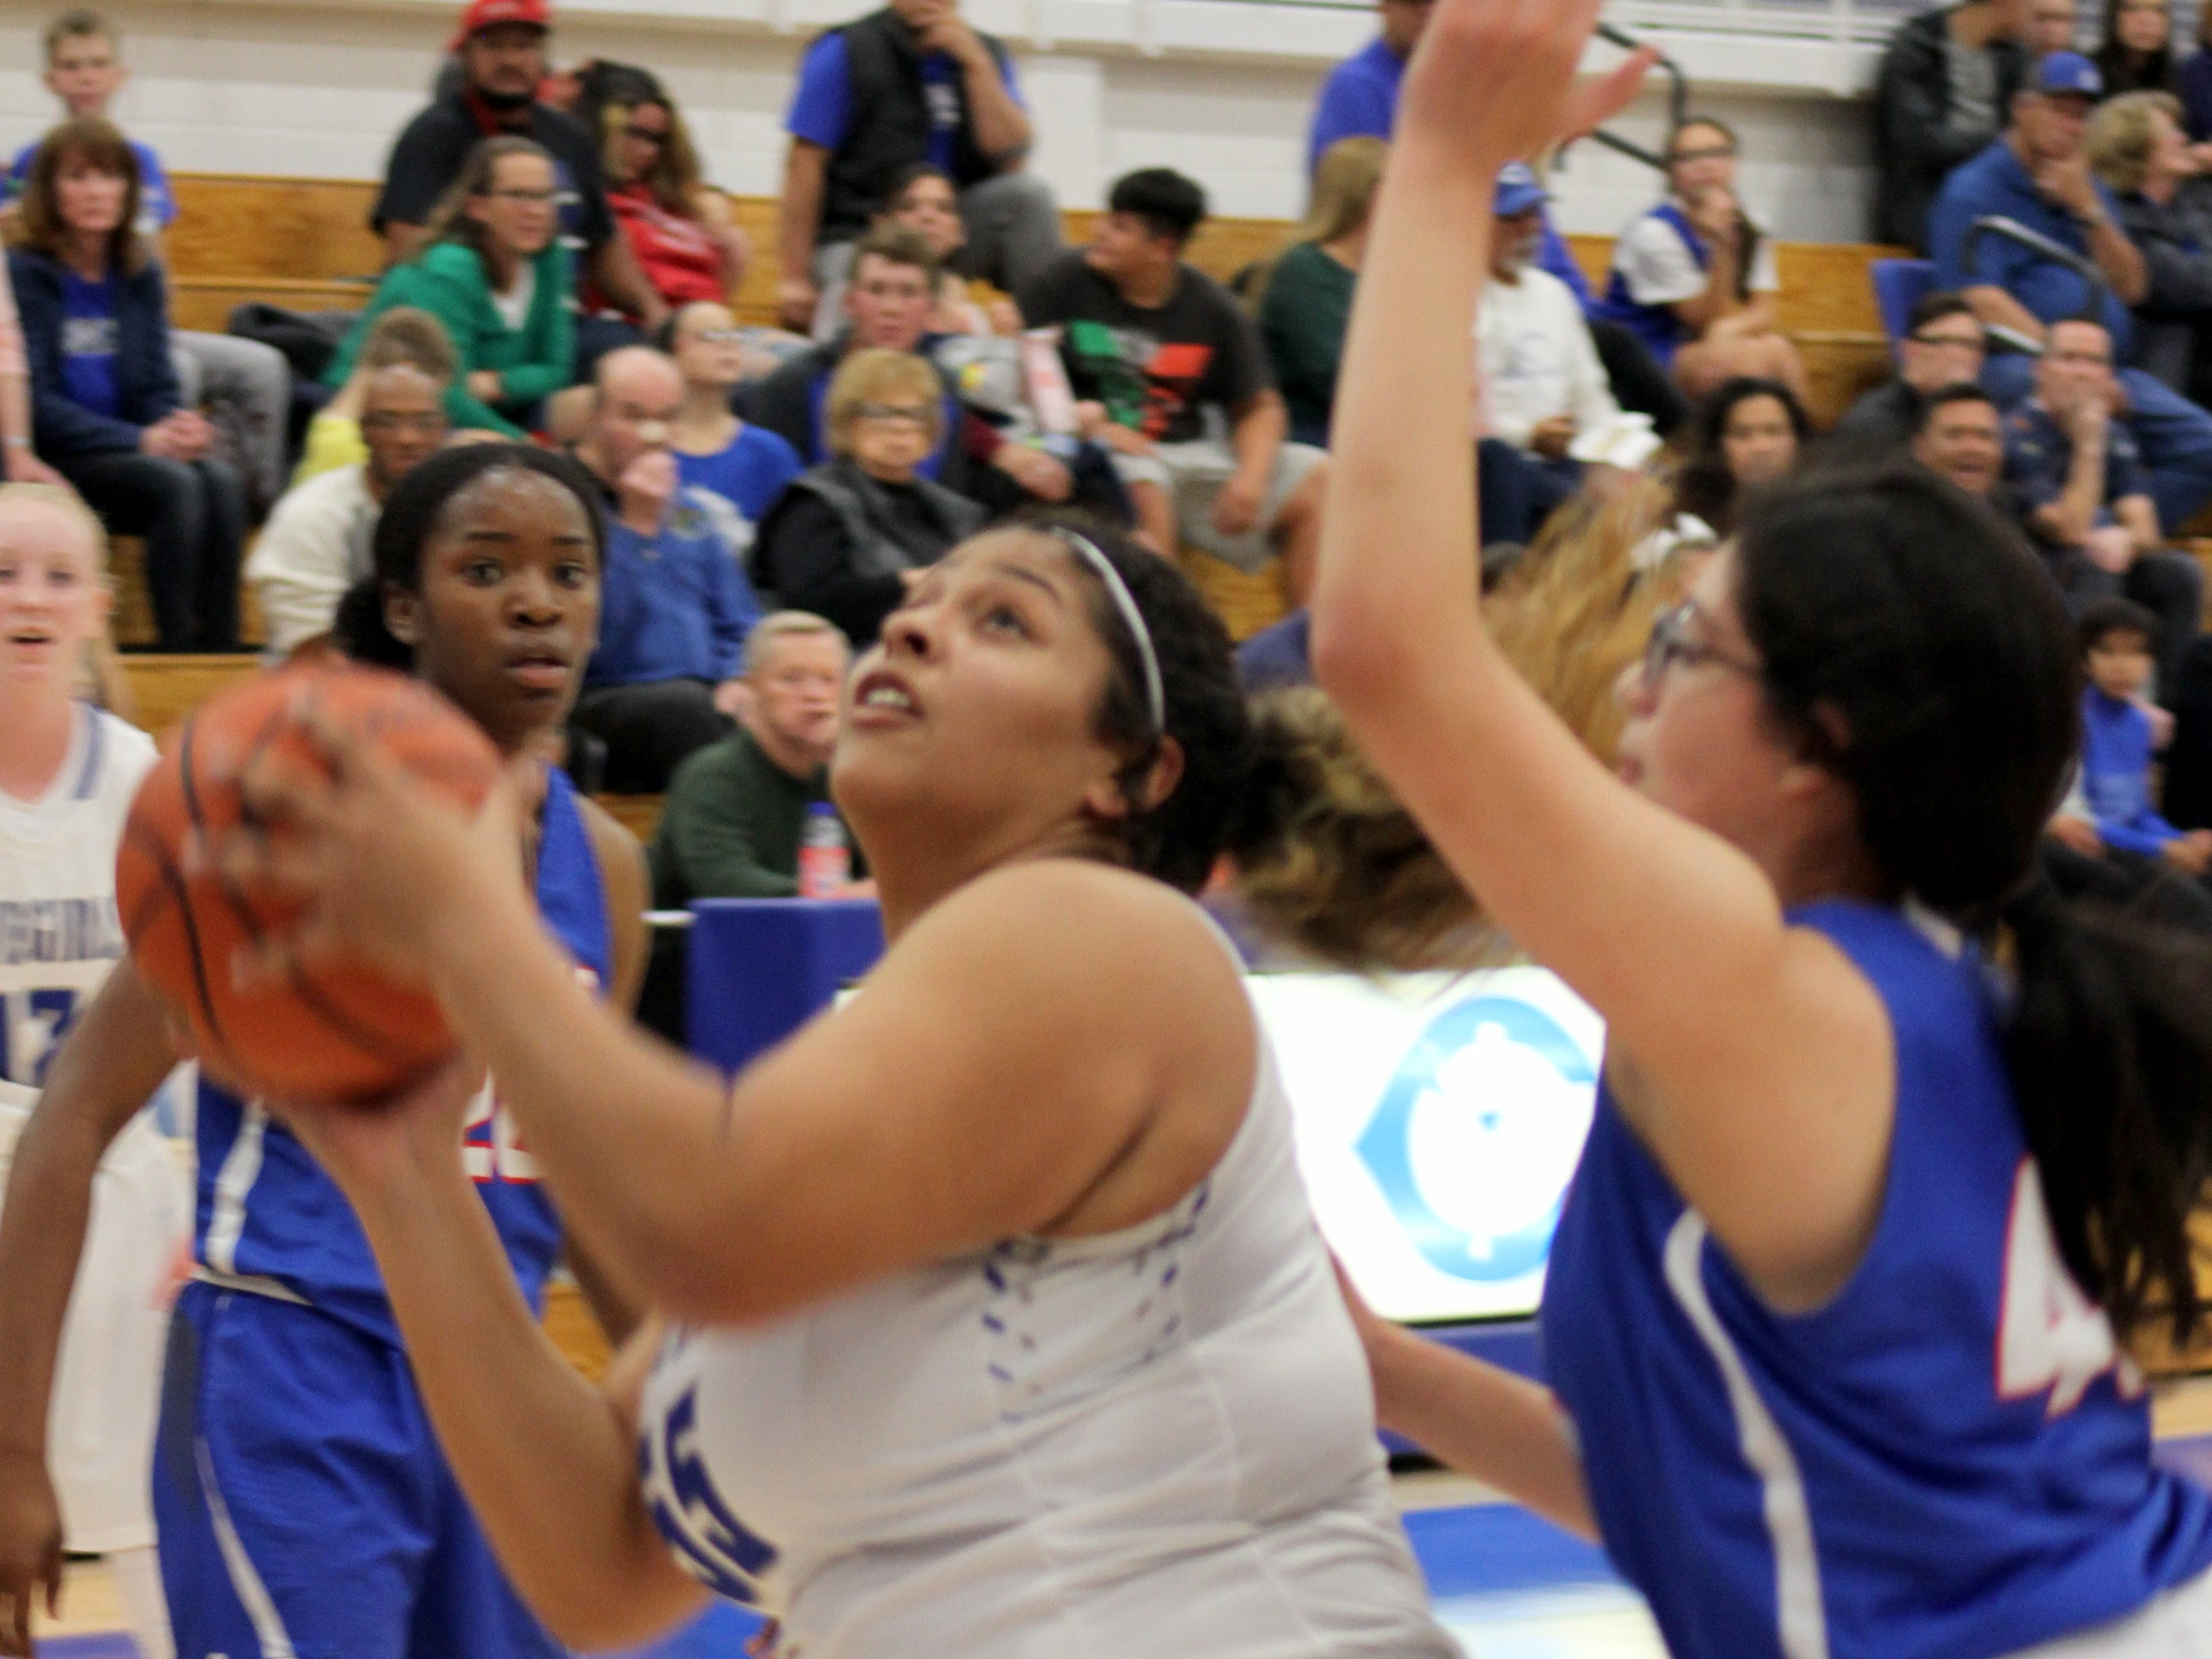 Carlsbad junior Kaliyah Montoya goes for a post shot during Monday's game against Americas. She finished with 23 points.